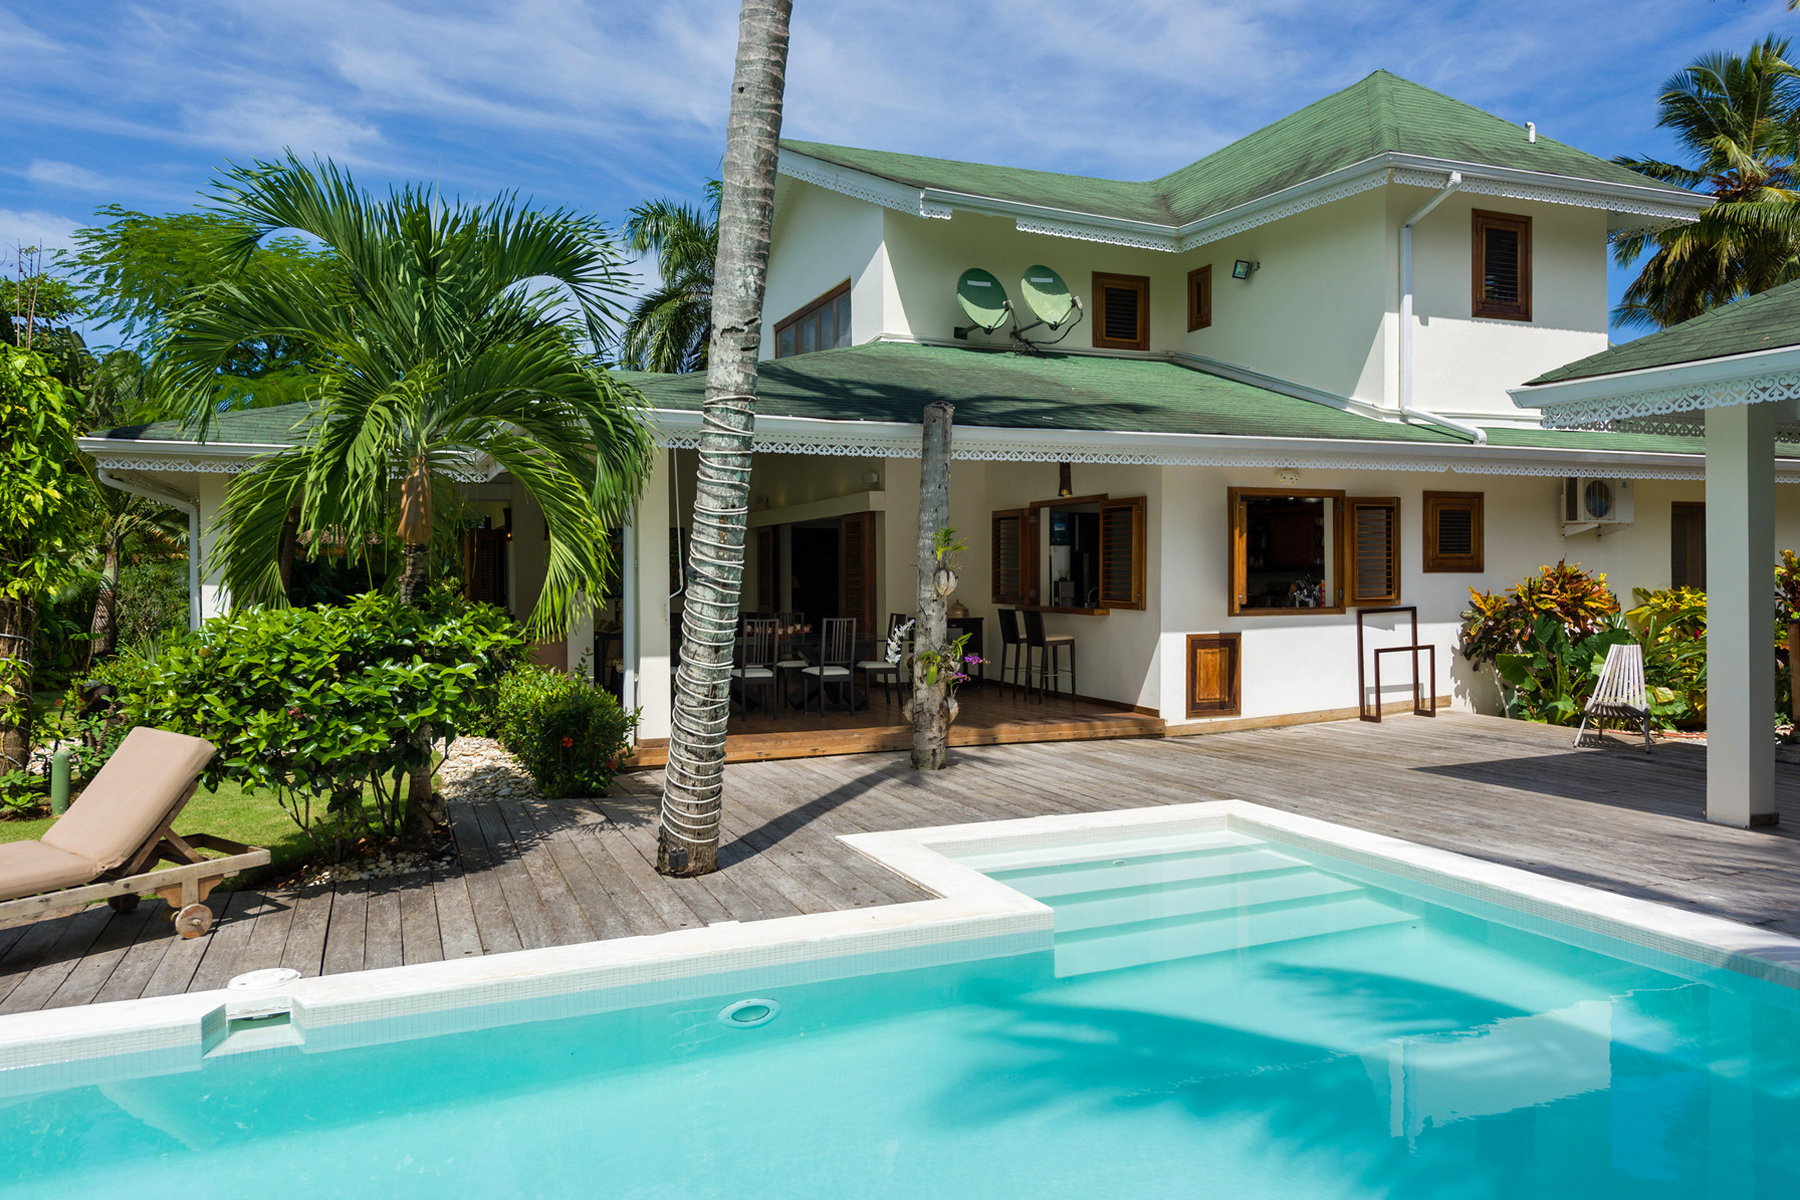 Single Family Home for Sale at Casa Carpe Diem Las Terrenas, Samana, 32000 Dominican Republic